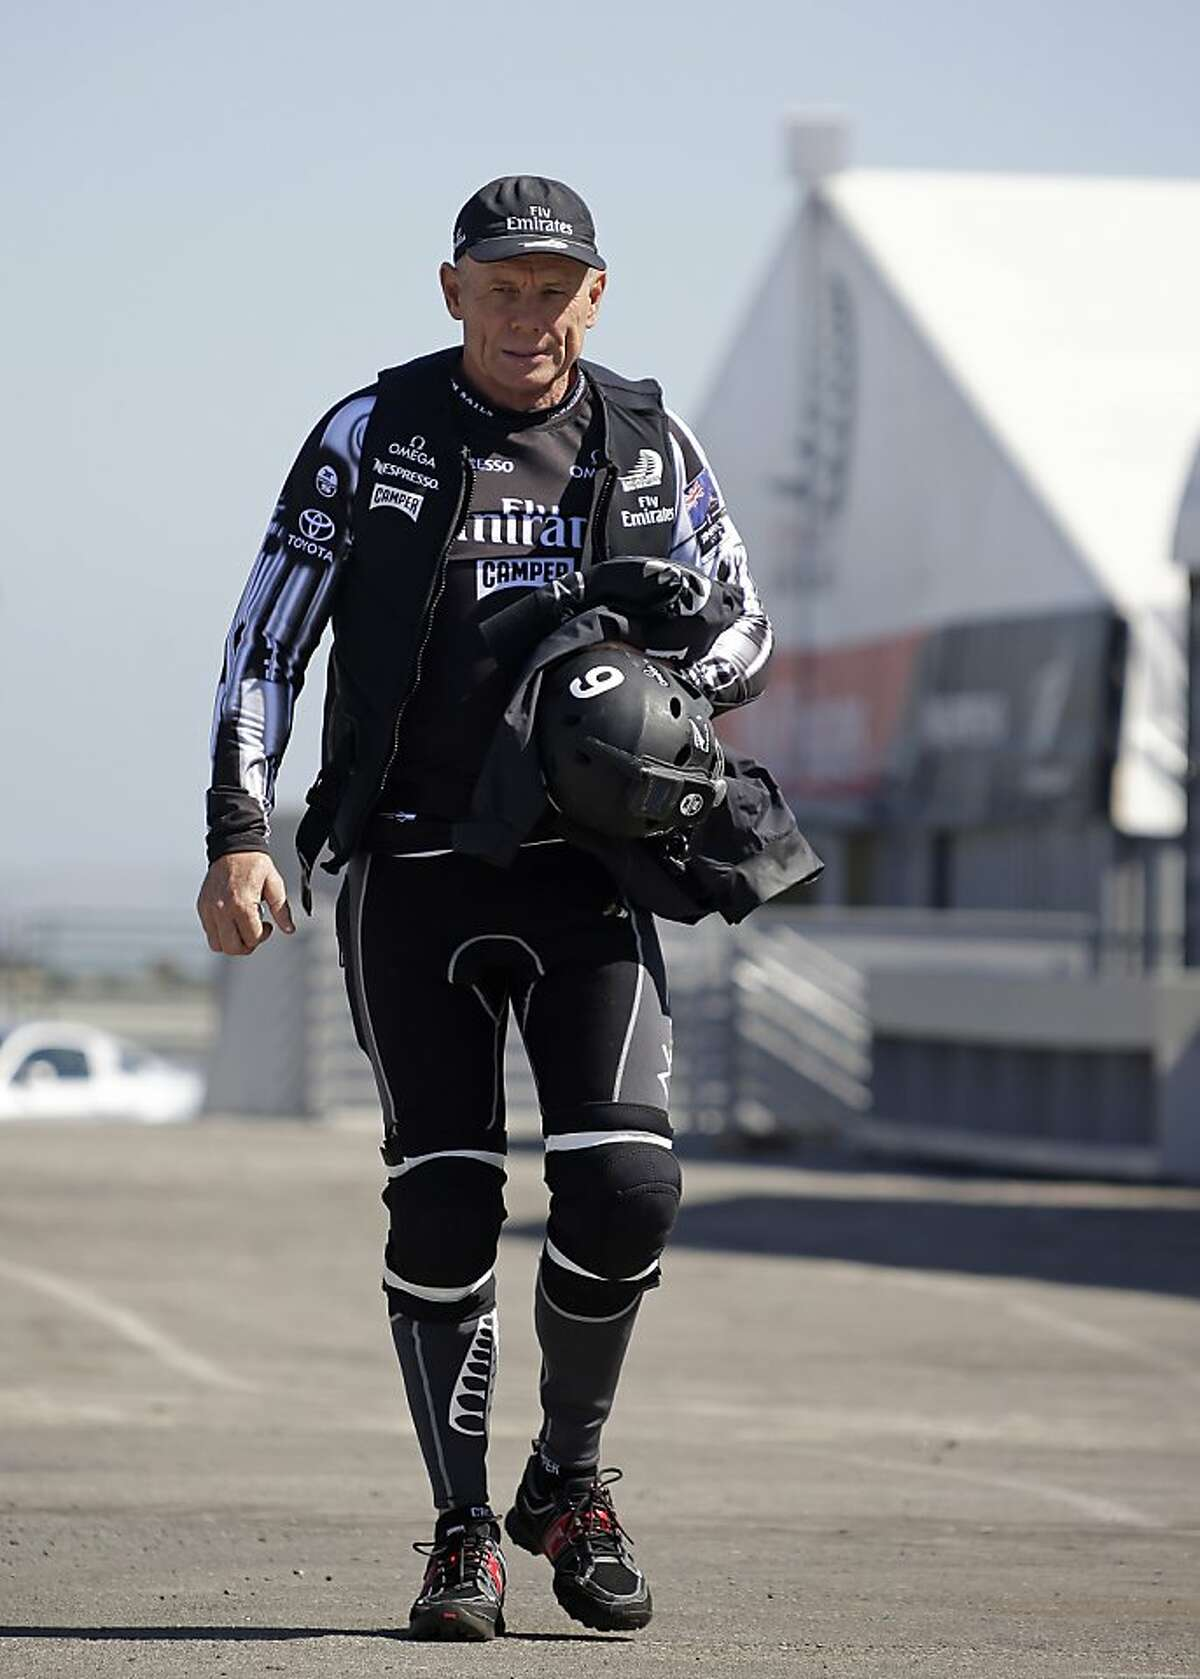 In this photo taken Friday May 24, 2013, Grant Dalton, the managing director of Emirates Team New Zealand, wears protective clothing and gear while heading out for a training run for the America's Cup in San Francisco. The margin for error is exceedingly small for an America's Cup sailor on the side of a tilting catamaran literally flying through the water at 40 mph. The days of gentlemen sailors in Sperry Topsiders and shorts grinding winches and pulling ropes are long gone, replaced by billionaire Larry Ellison's made-for-television, white-knuckle competition for fixed-sail yachts. (AP Photo/Eric Risberg)